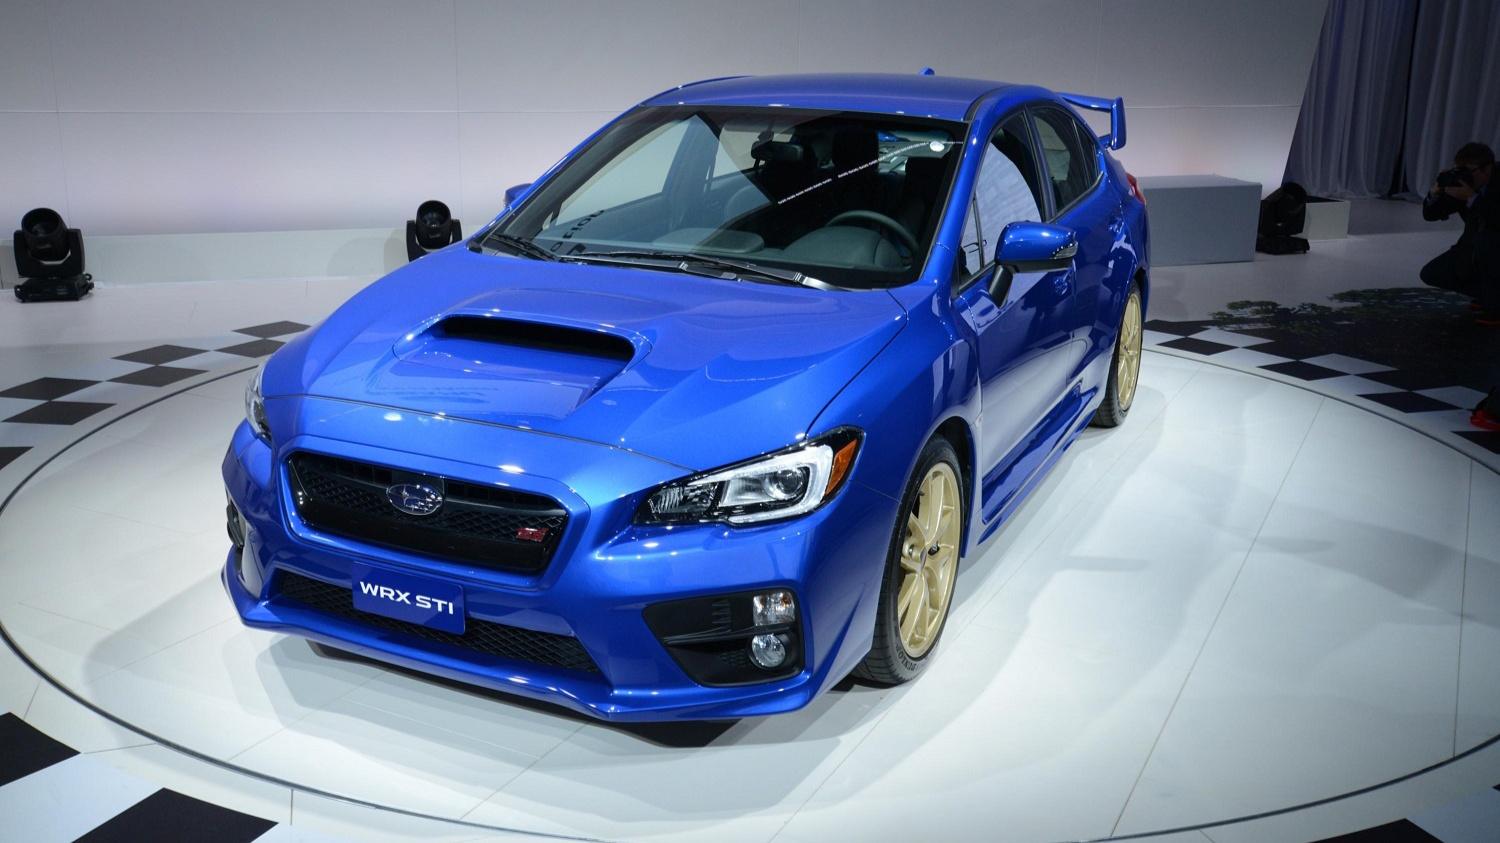 presentado en detroit el nuevo subaru wrx sti. Black Bedroom Furniture Sets. Home Design Ideas